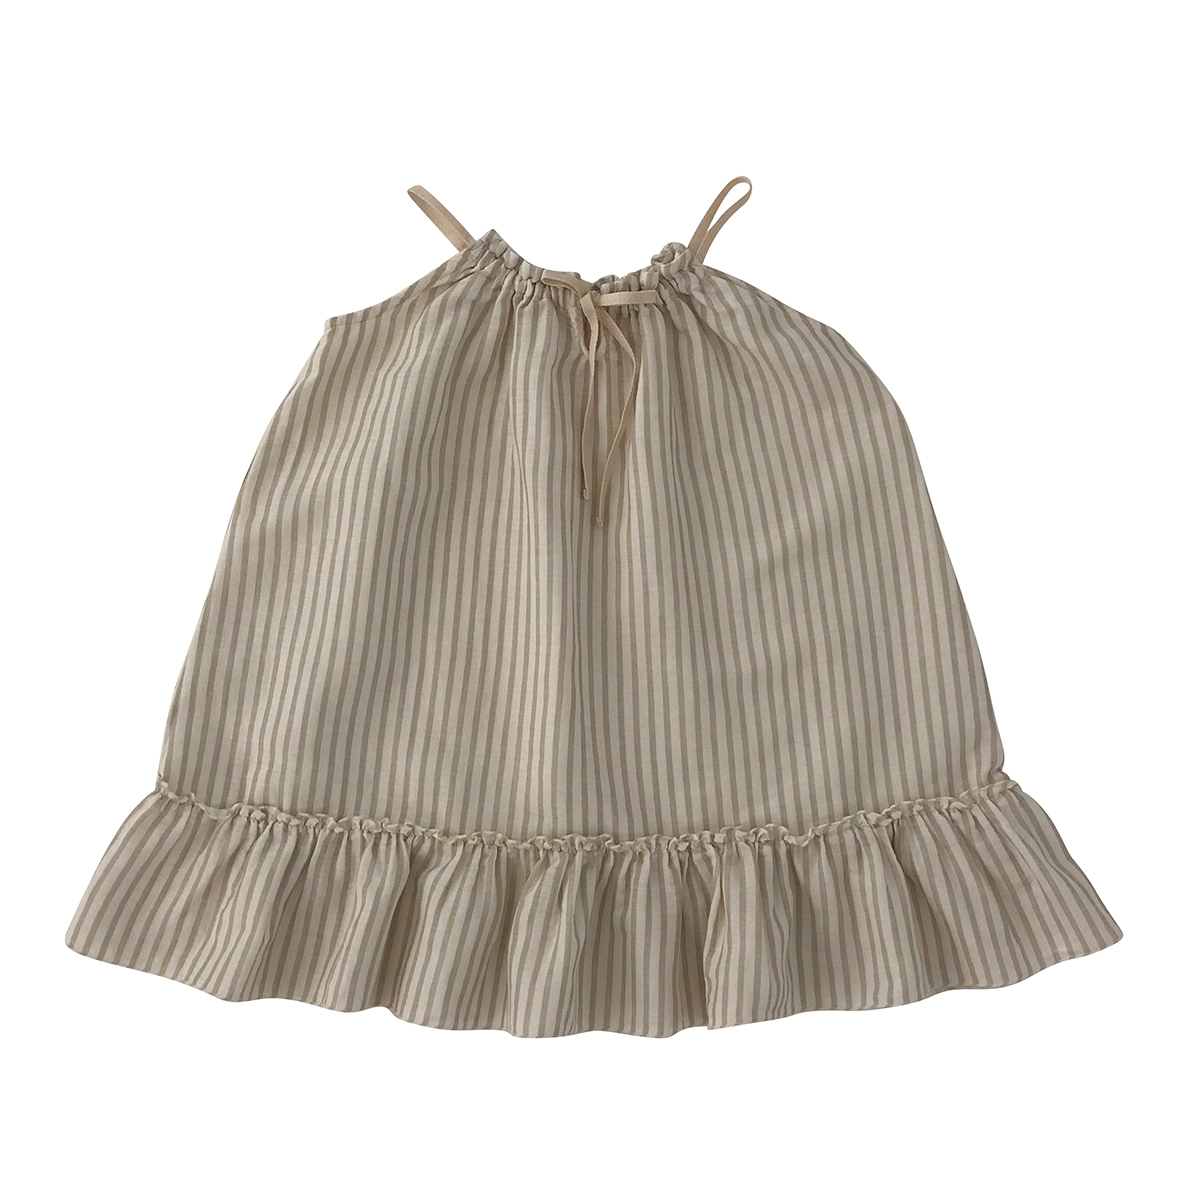 liilu Toddler/Big Kid Cara Dress- Sandy Stripes